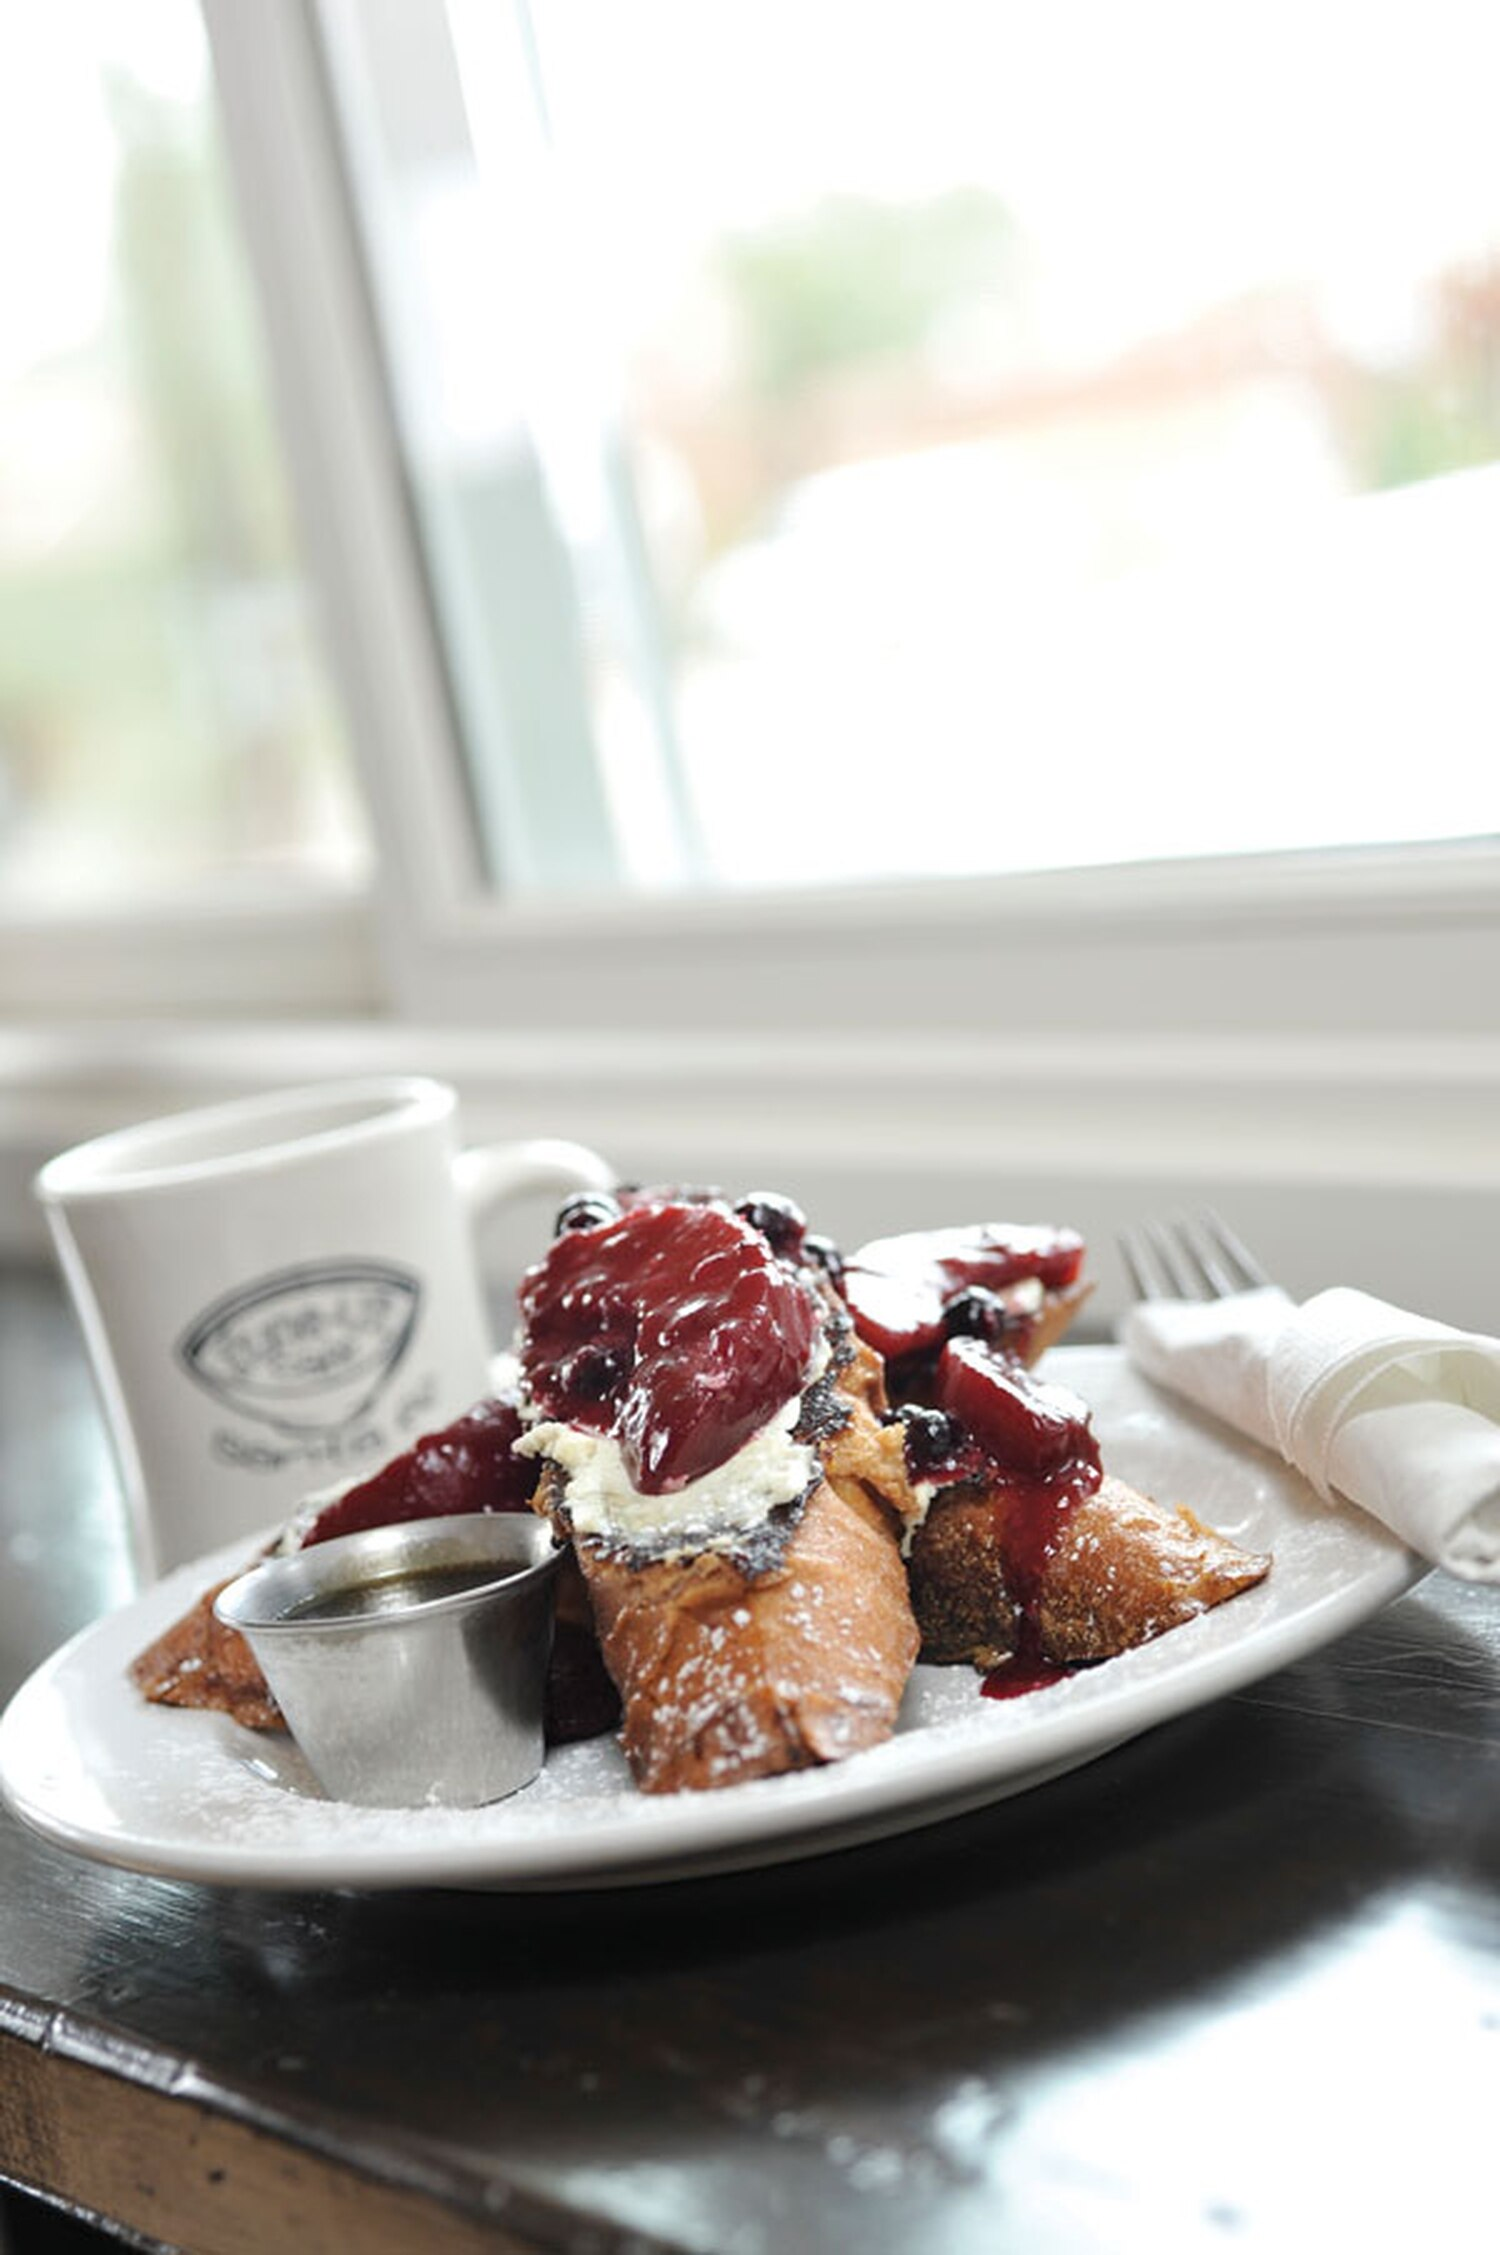 Fruit-compote-stuffed French toast